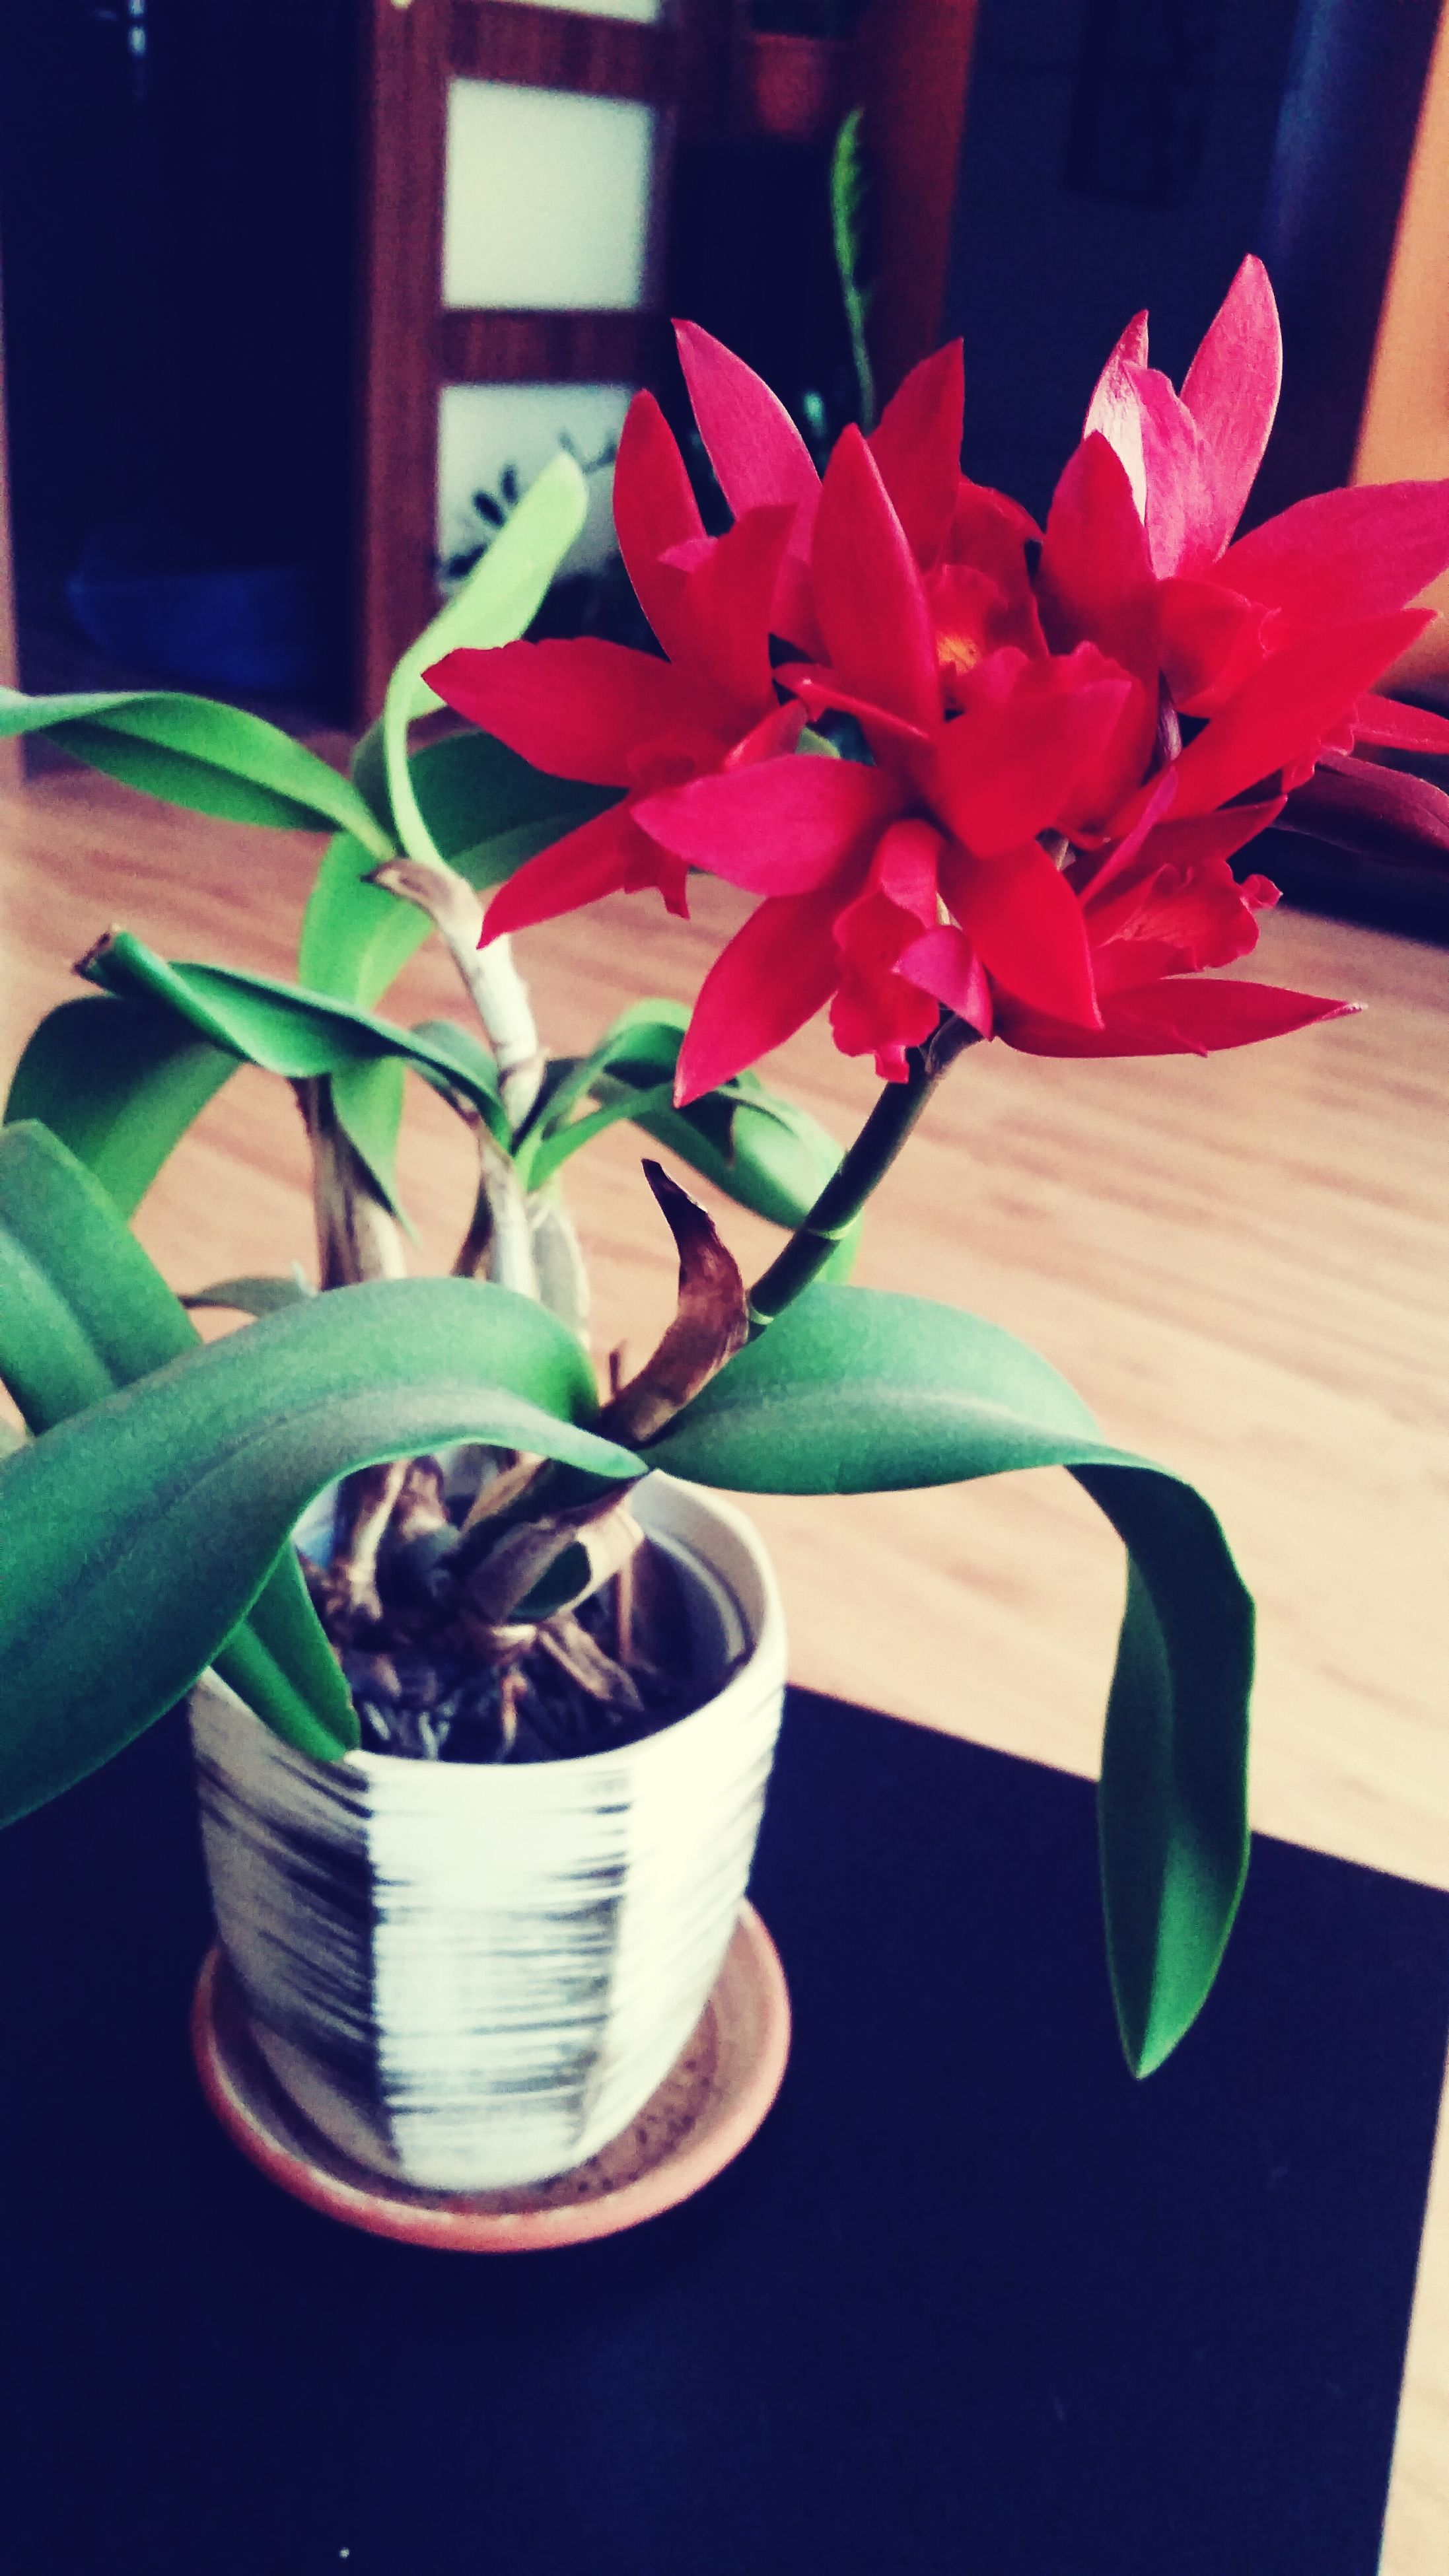 freshness, table, flower, indoors, still life, vase, food and drink, close-up, fragility, wood - material, petal, plant, high angle view, red, no people, growth, potted plant, flower head, home interior, leaf